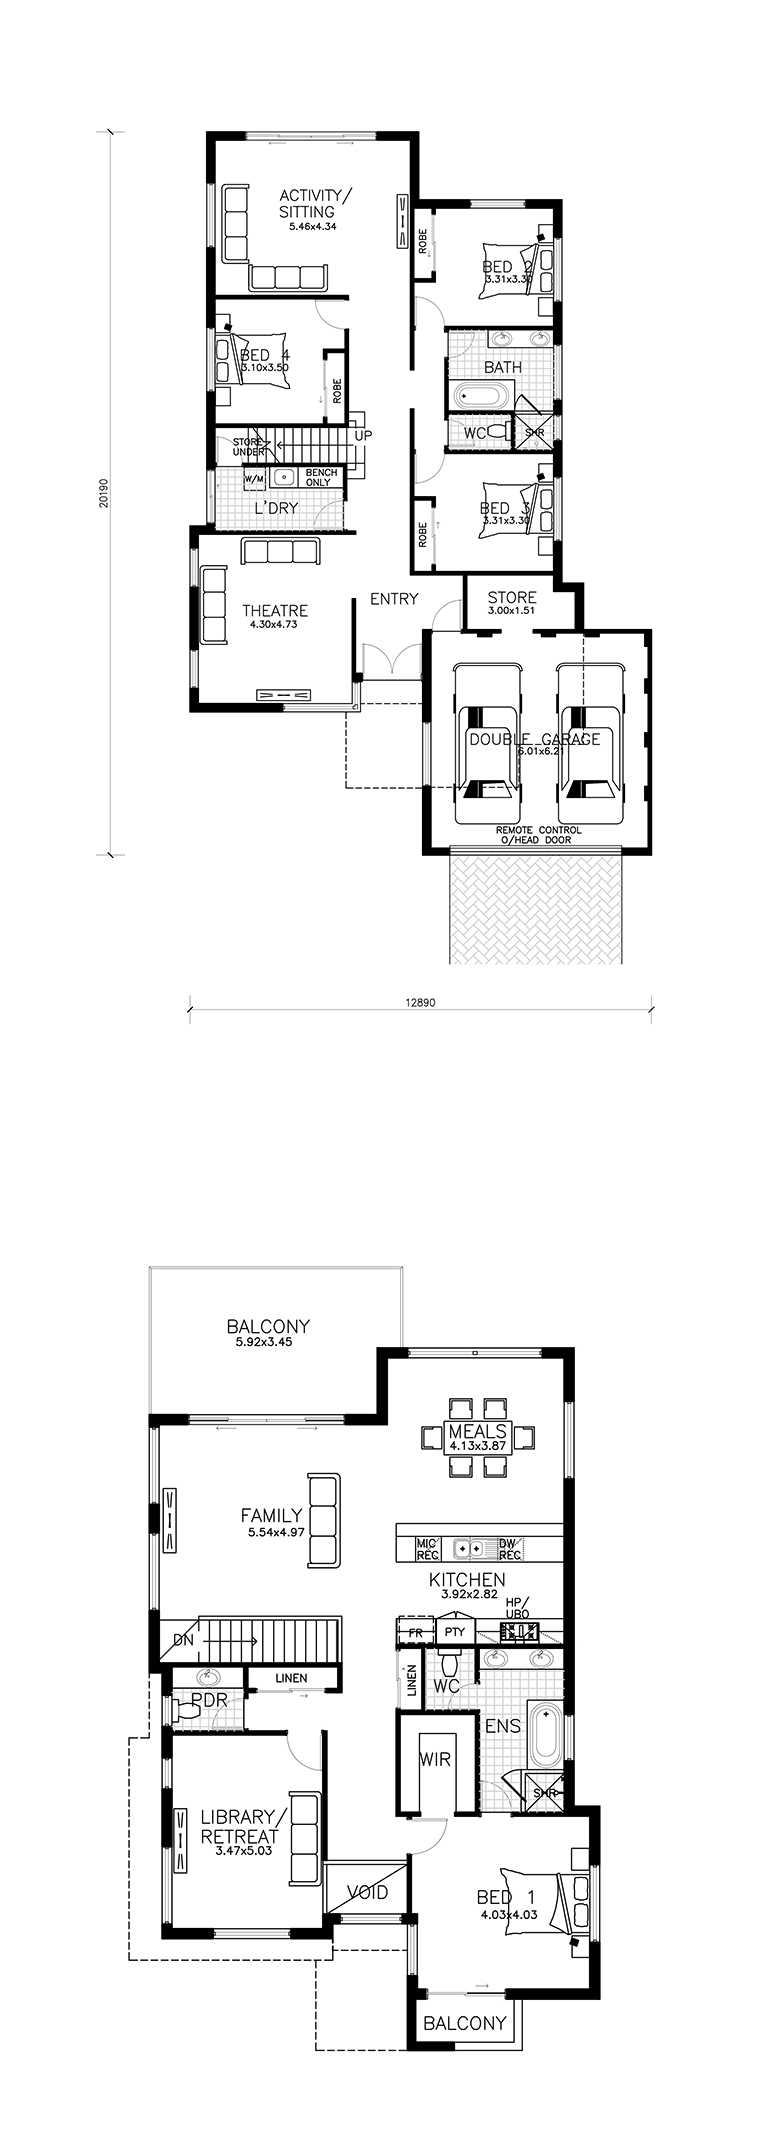 Nautilus floor plan